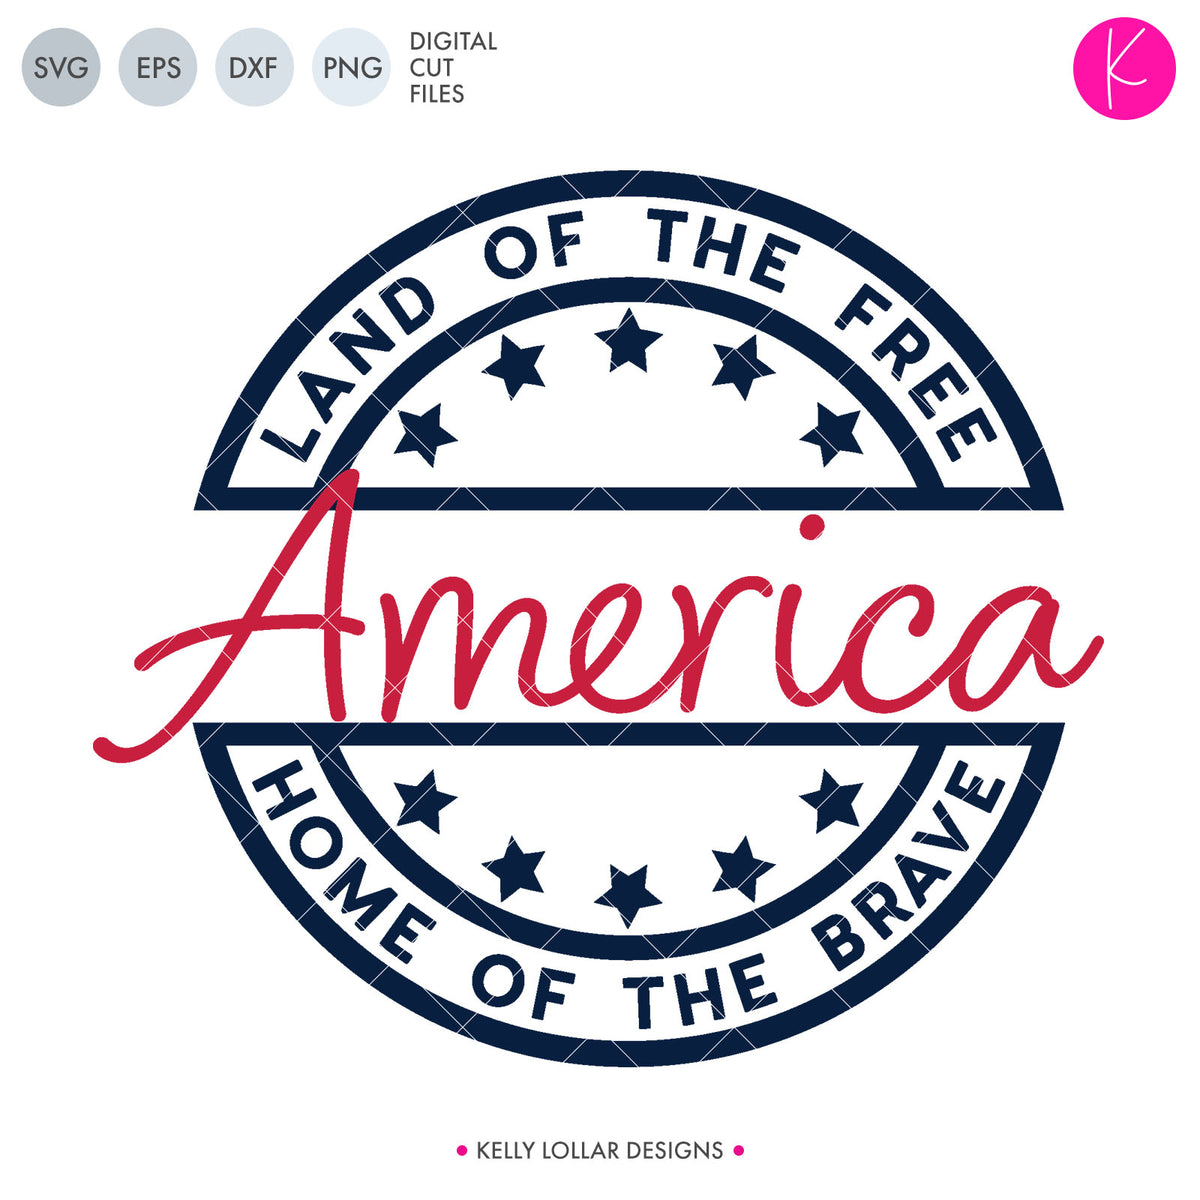 America: Land of the Free Home of the Brave | SVG DXF EPS PNG Cut Files